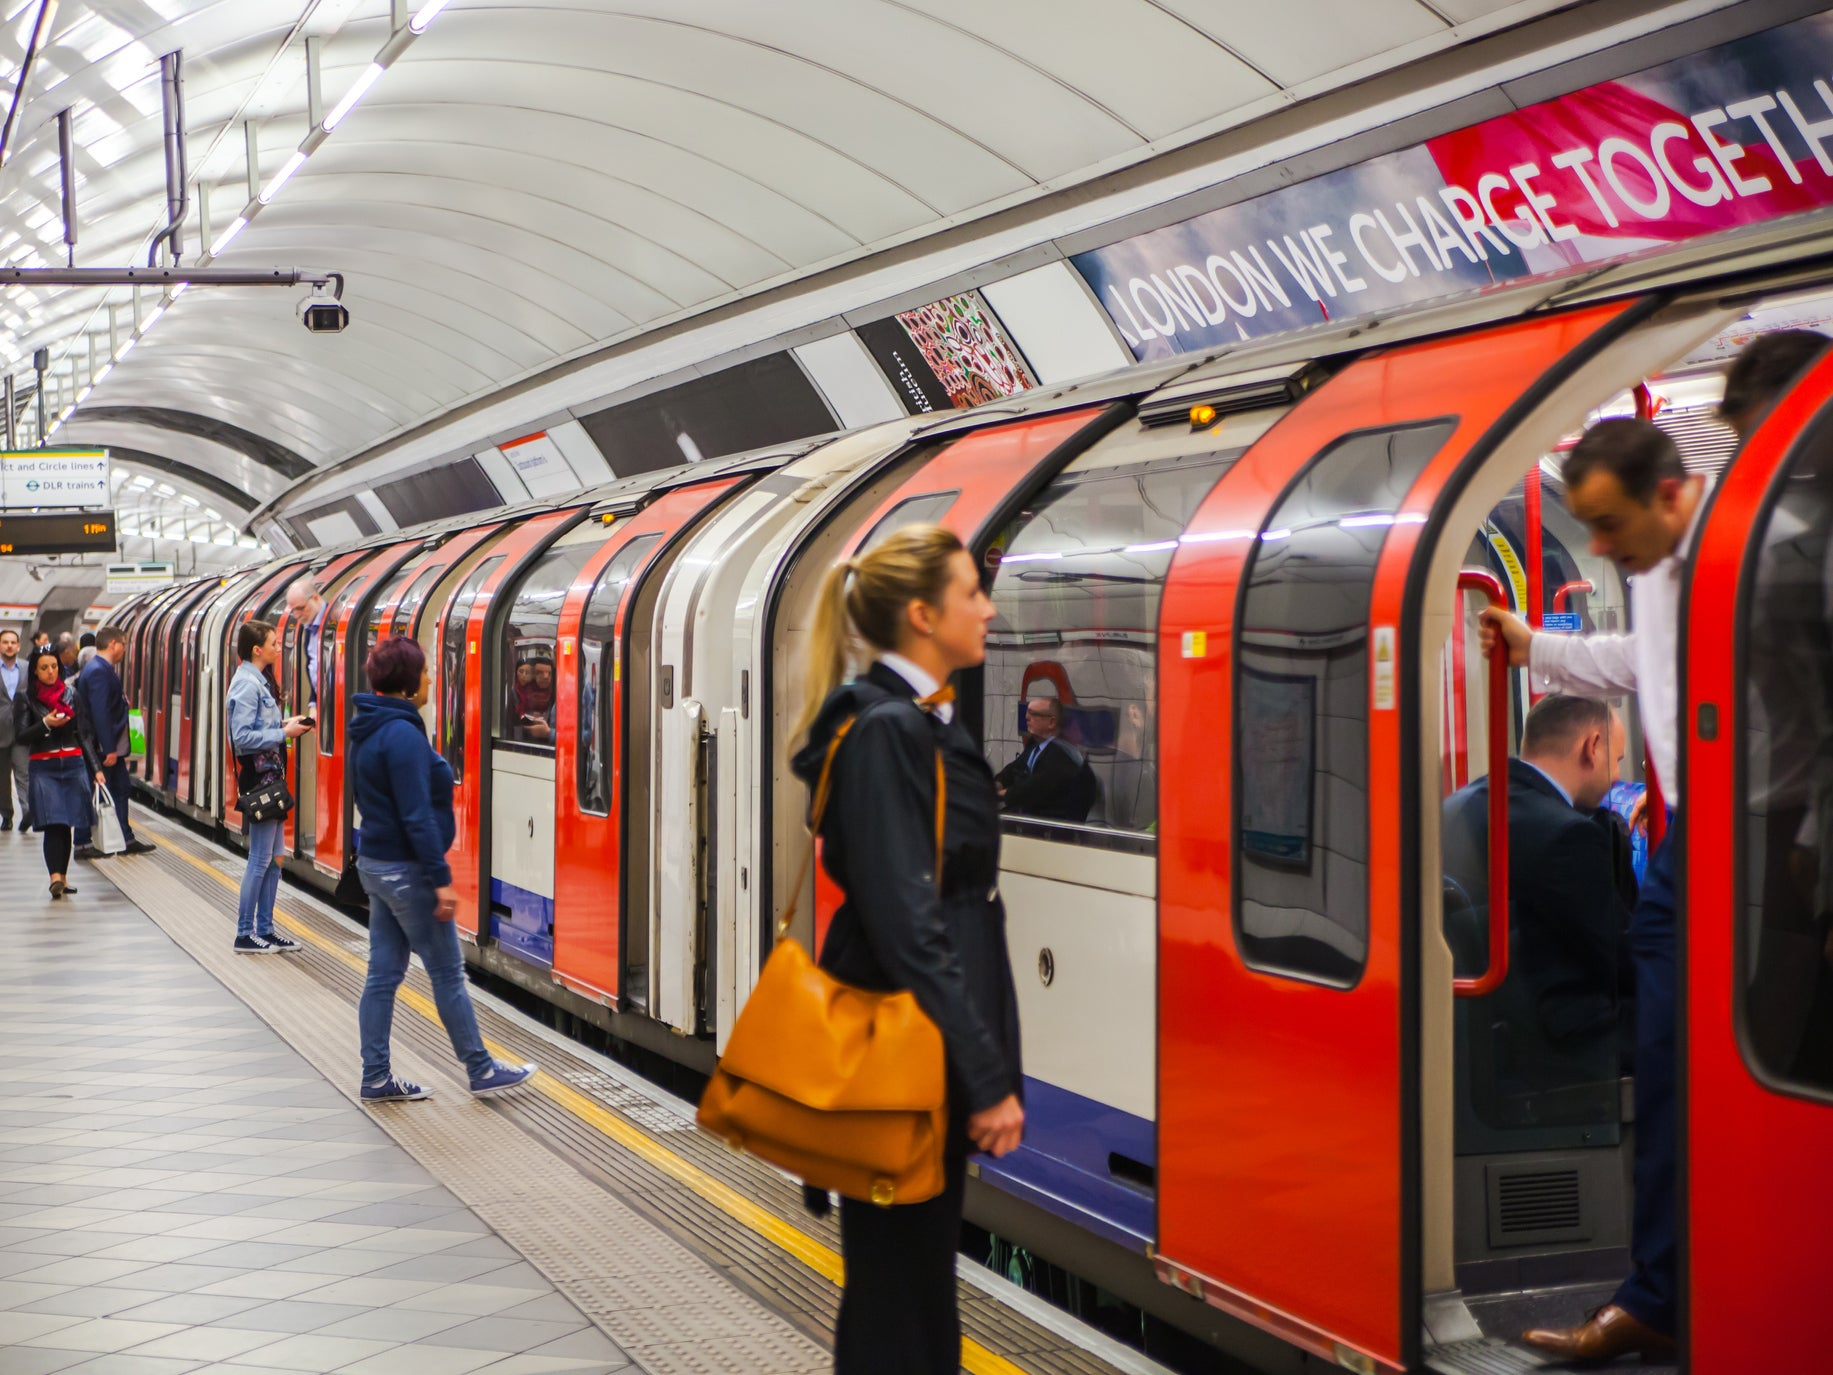 One in 10 London Underground staff sexually harassed by passengers